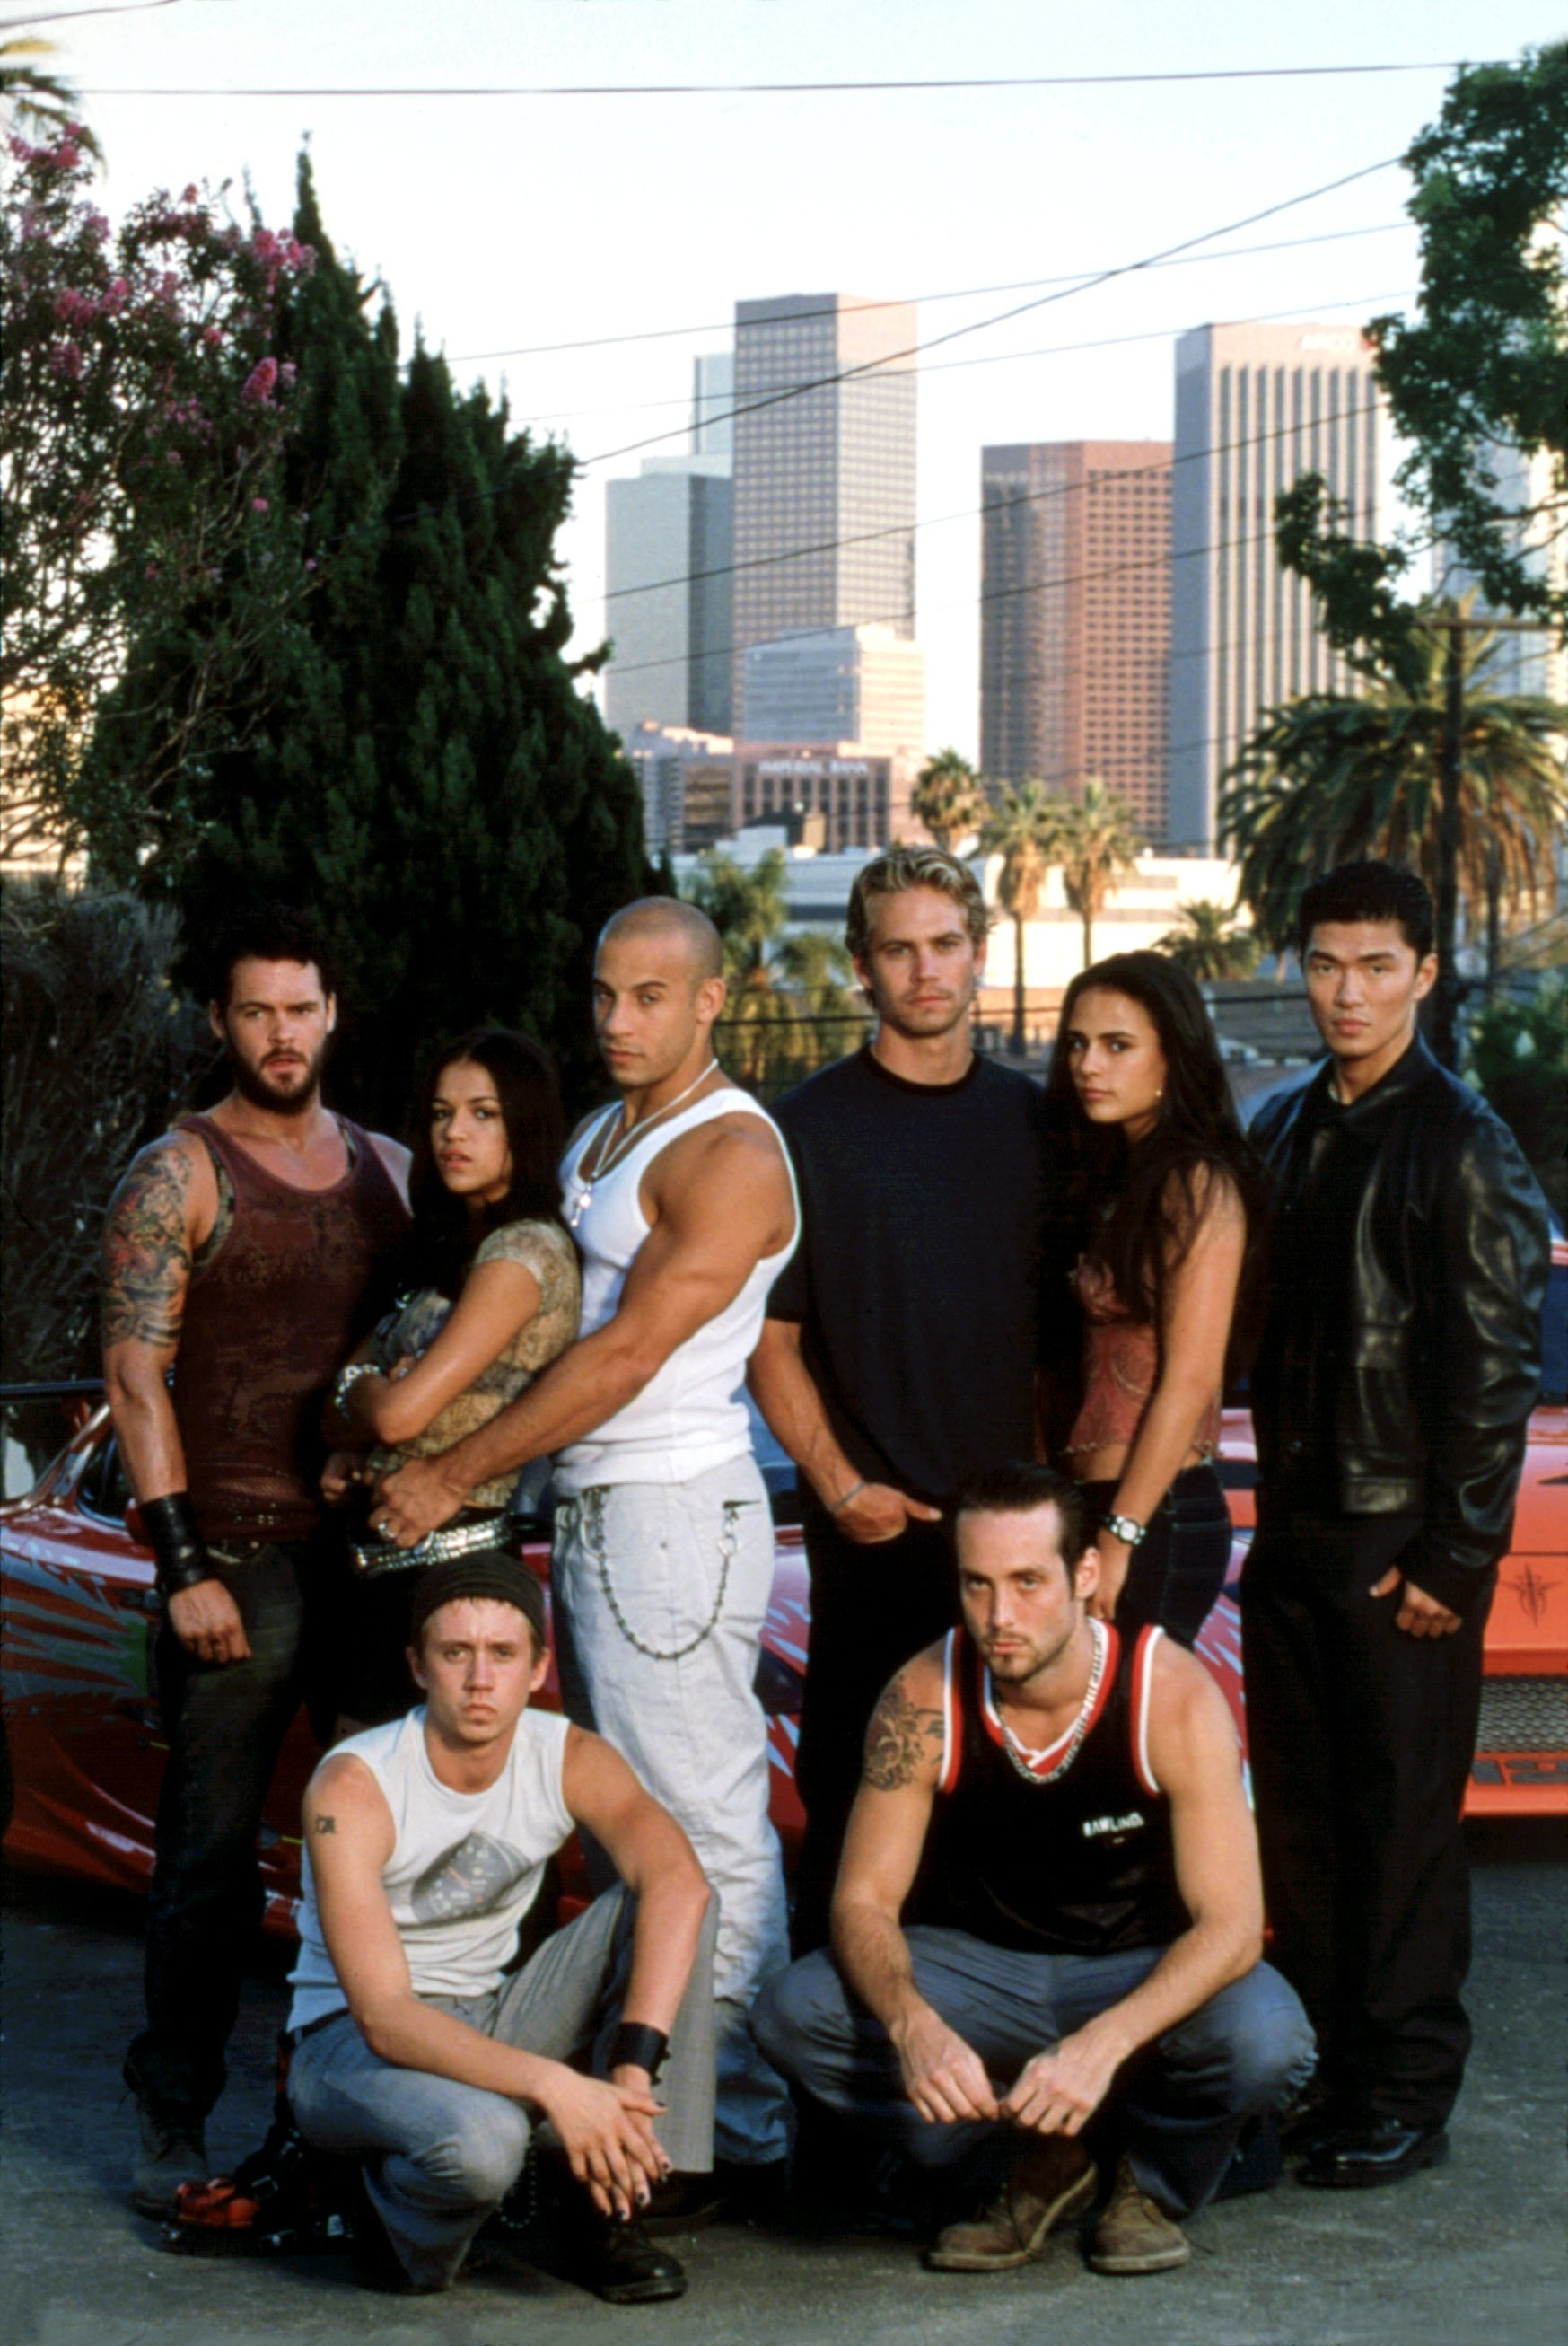 Jordana Brewster on the eighth chapter in the 'Fast & Furious' franchise: